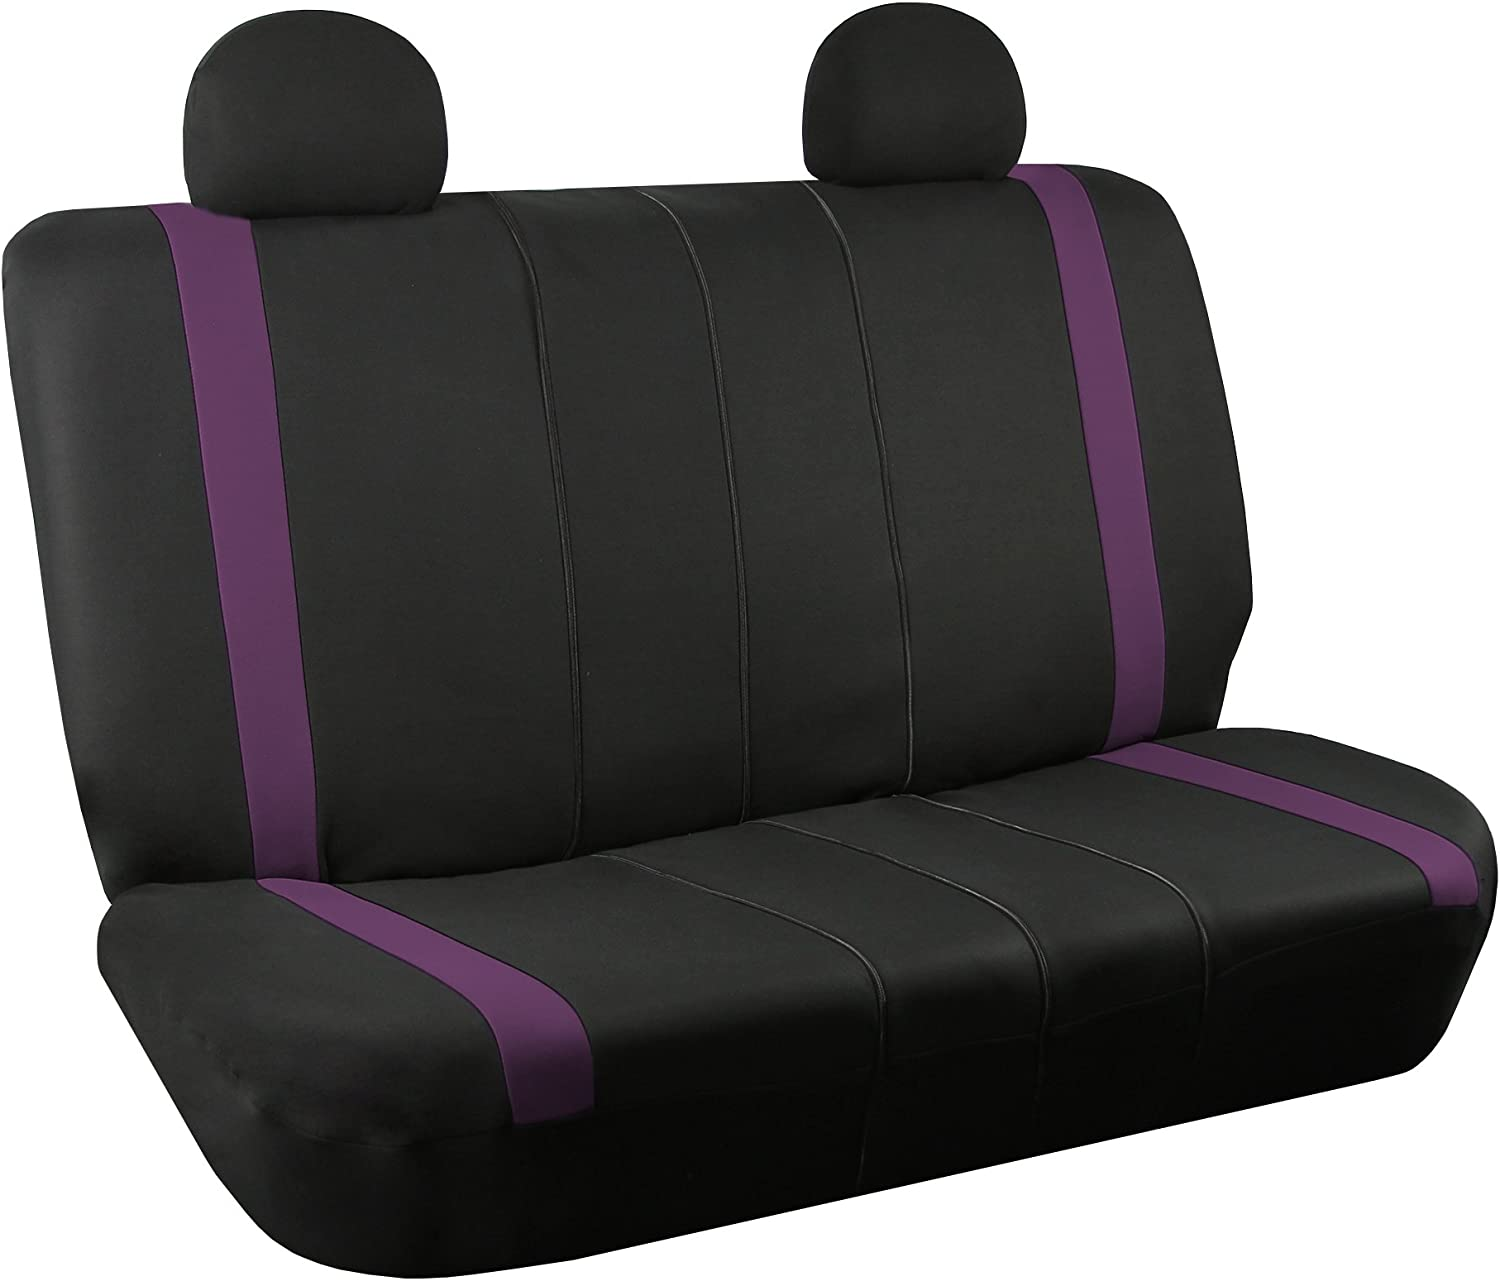 w. 4 Detachable Headrests and Solid Bench FH Group FB032PURPLE114 Purple Unique Flat Cloth Car Seat Cover